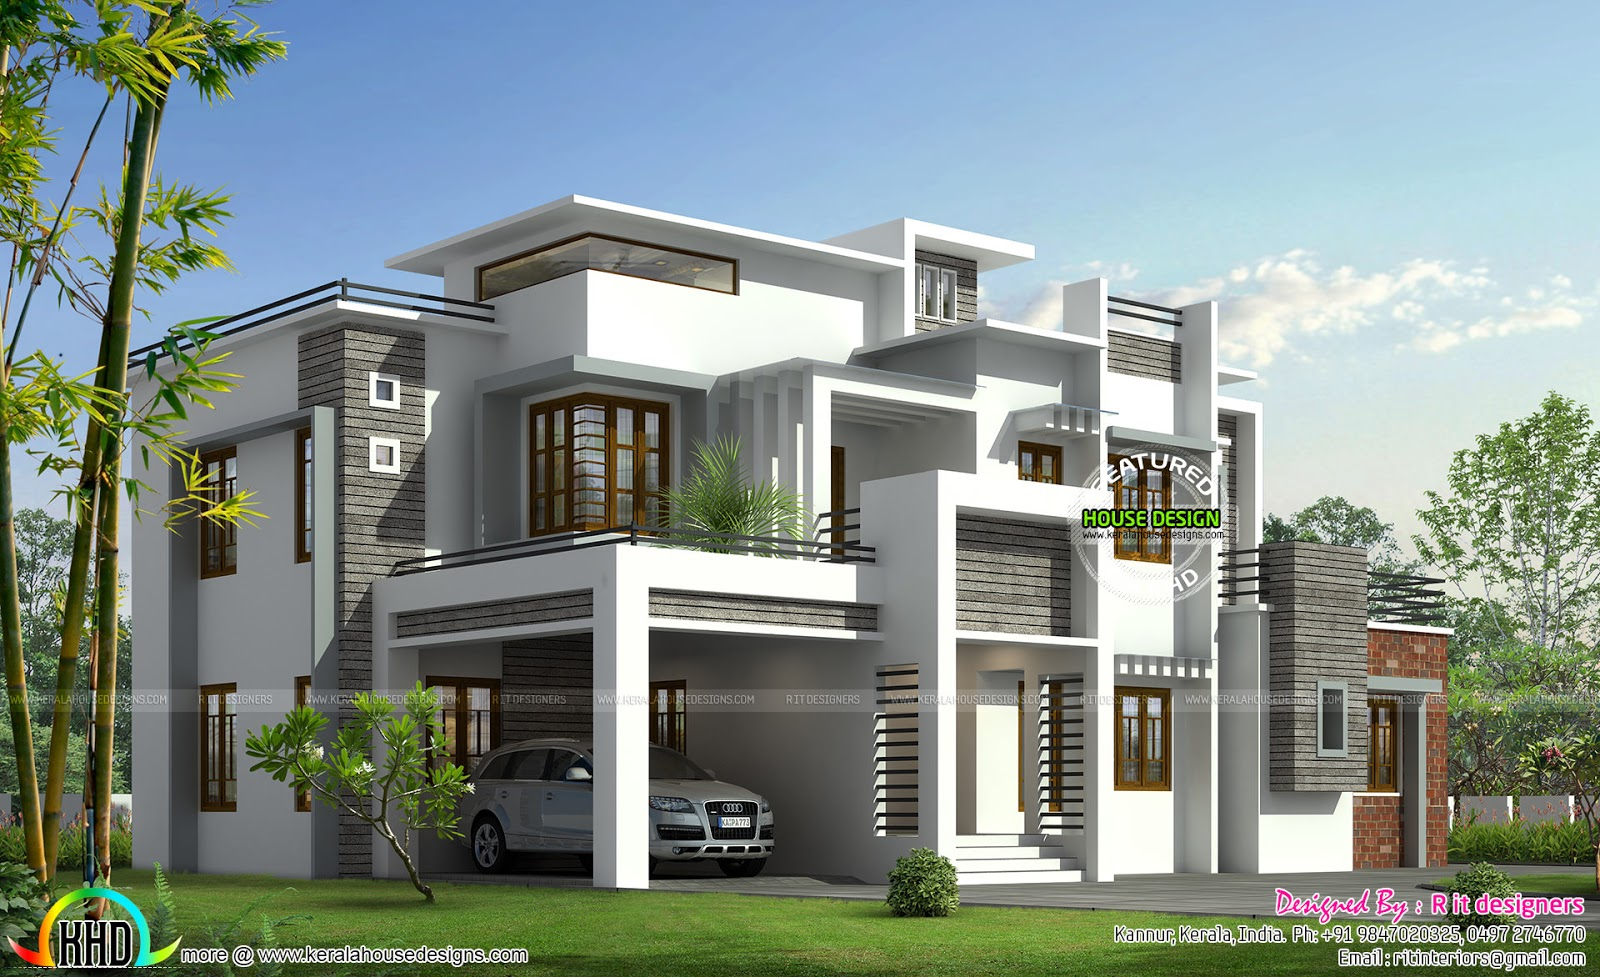 Box model contemporary house kerala home design and for Small contemporary home designs